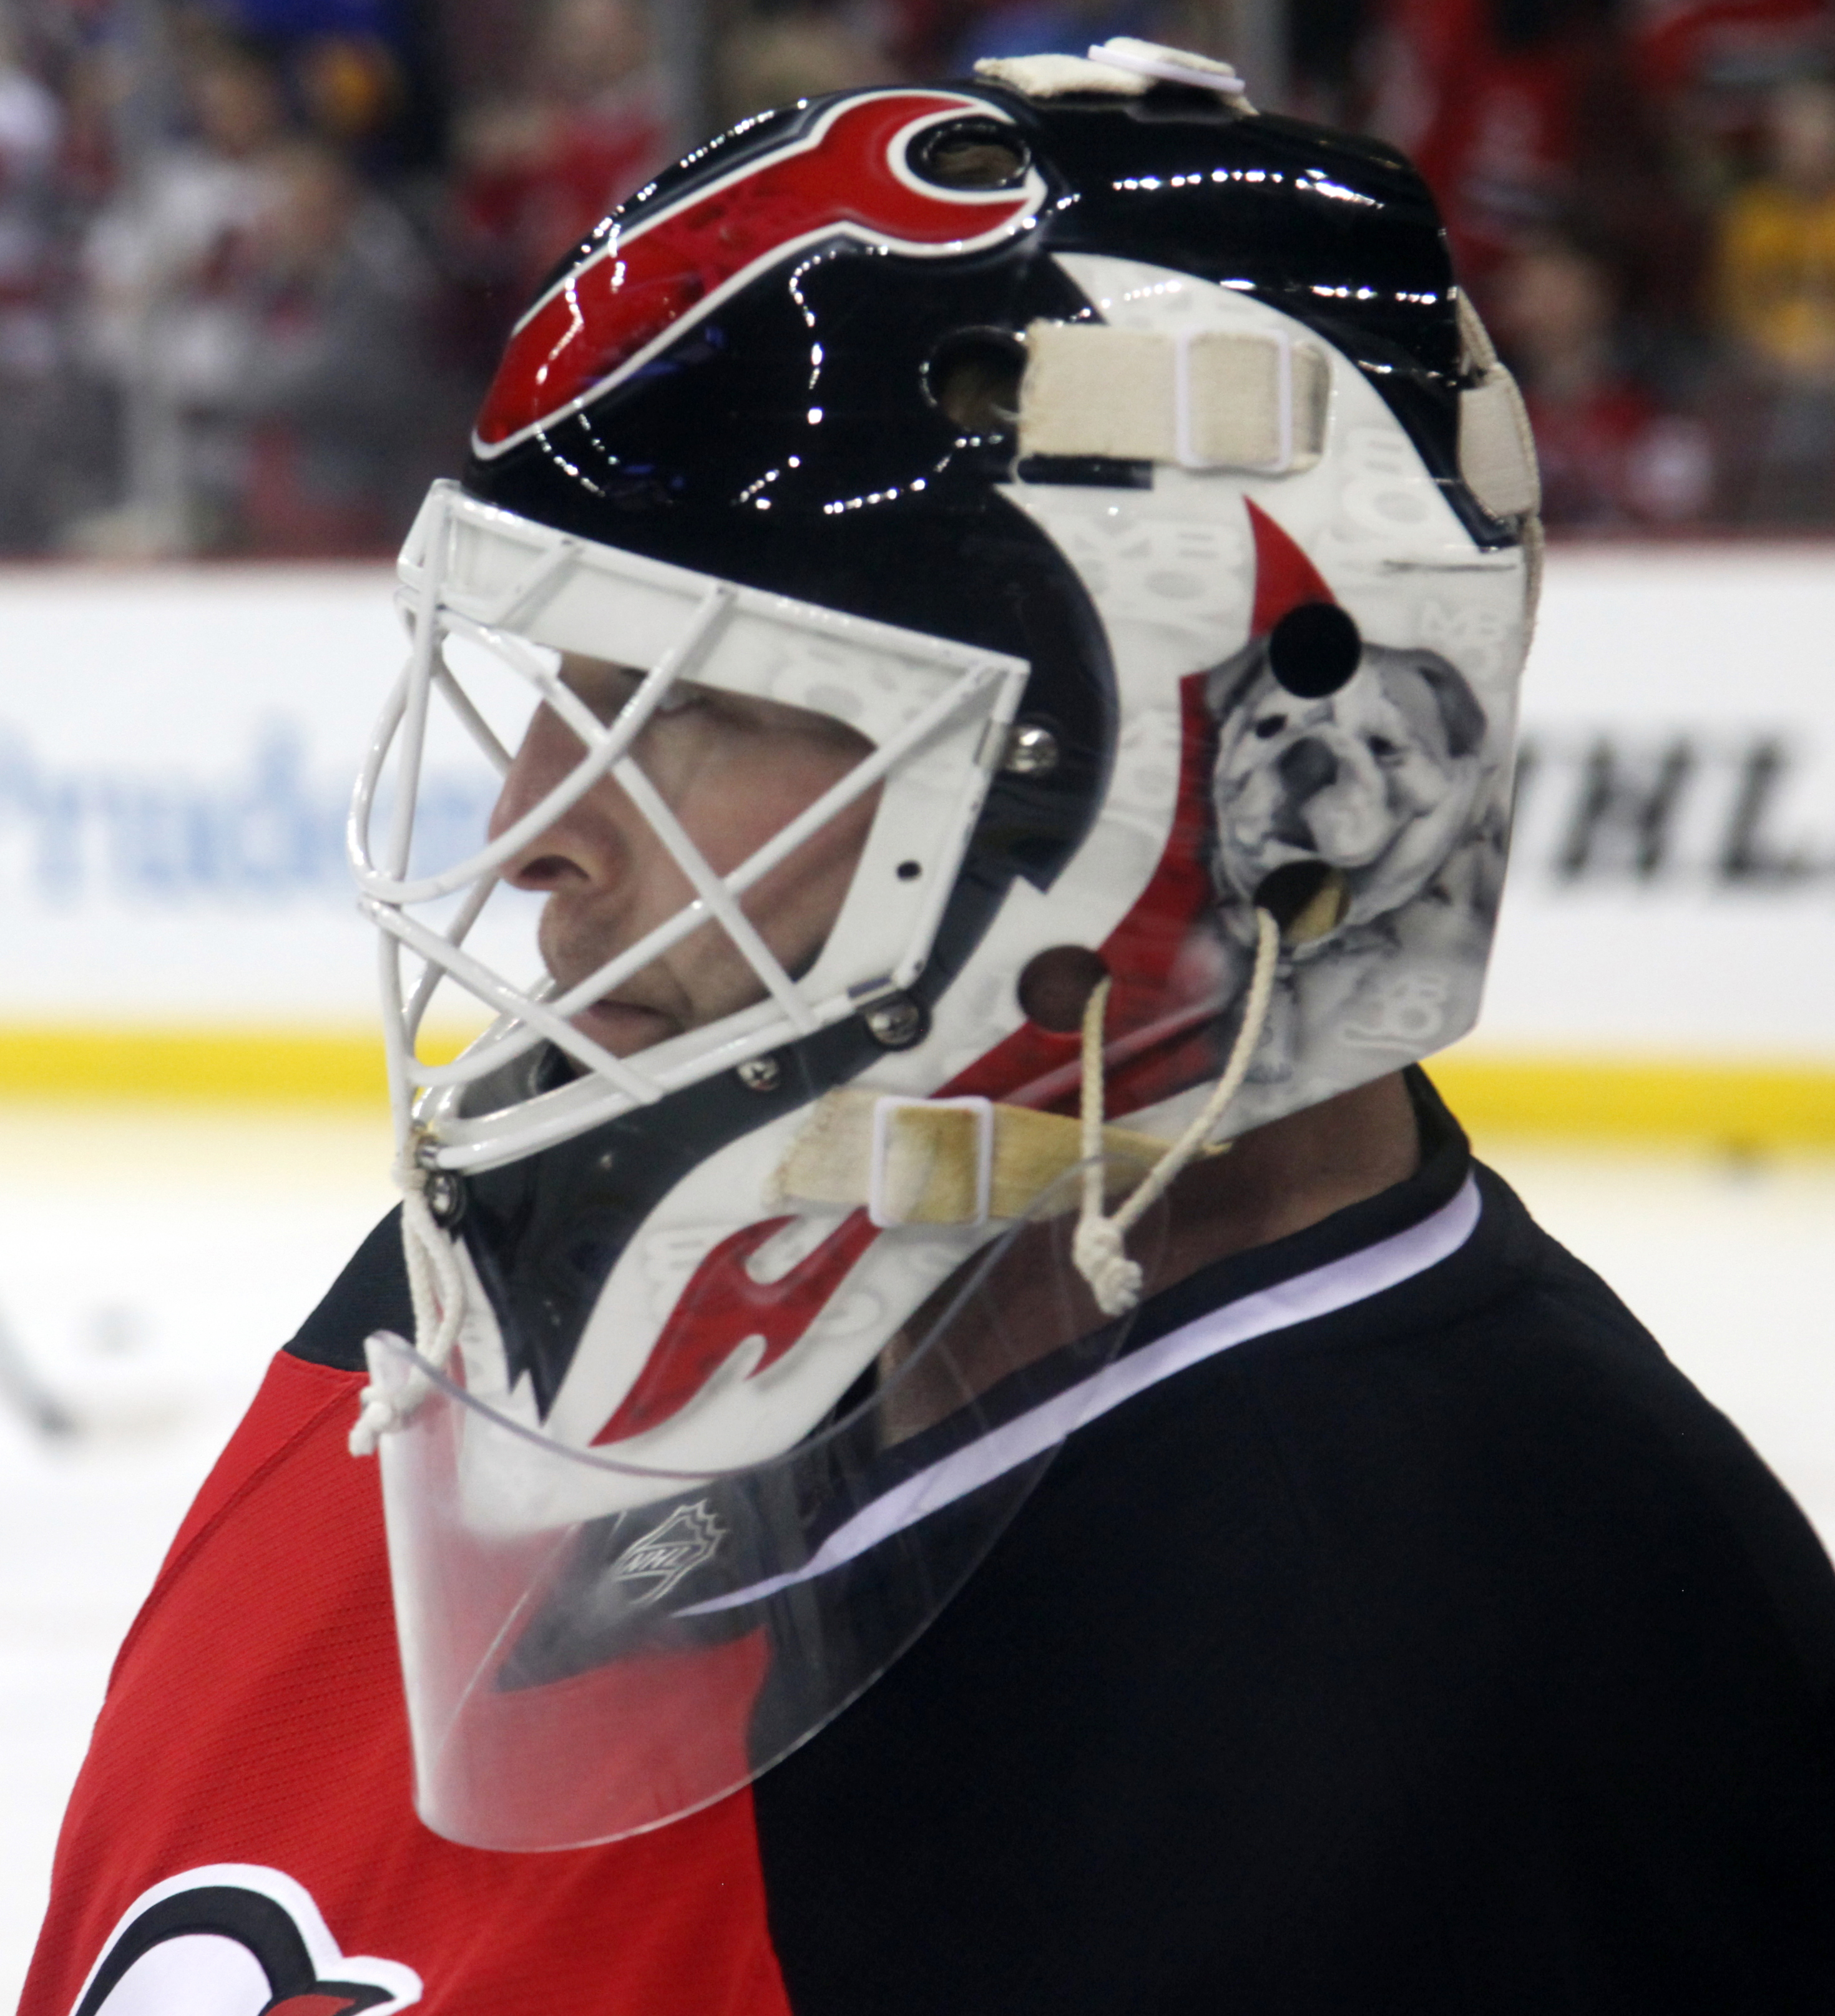 the best attitude bc8ab cad67 File:Martin Brodeur - New Jersey Devils.jpg - Wikimedia Commons